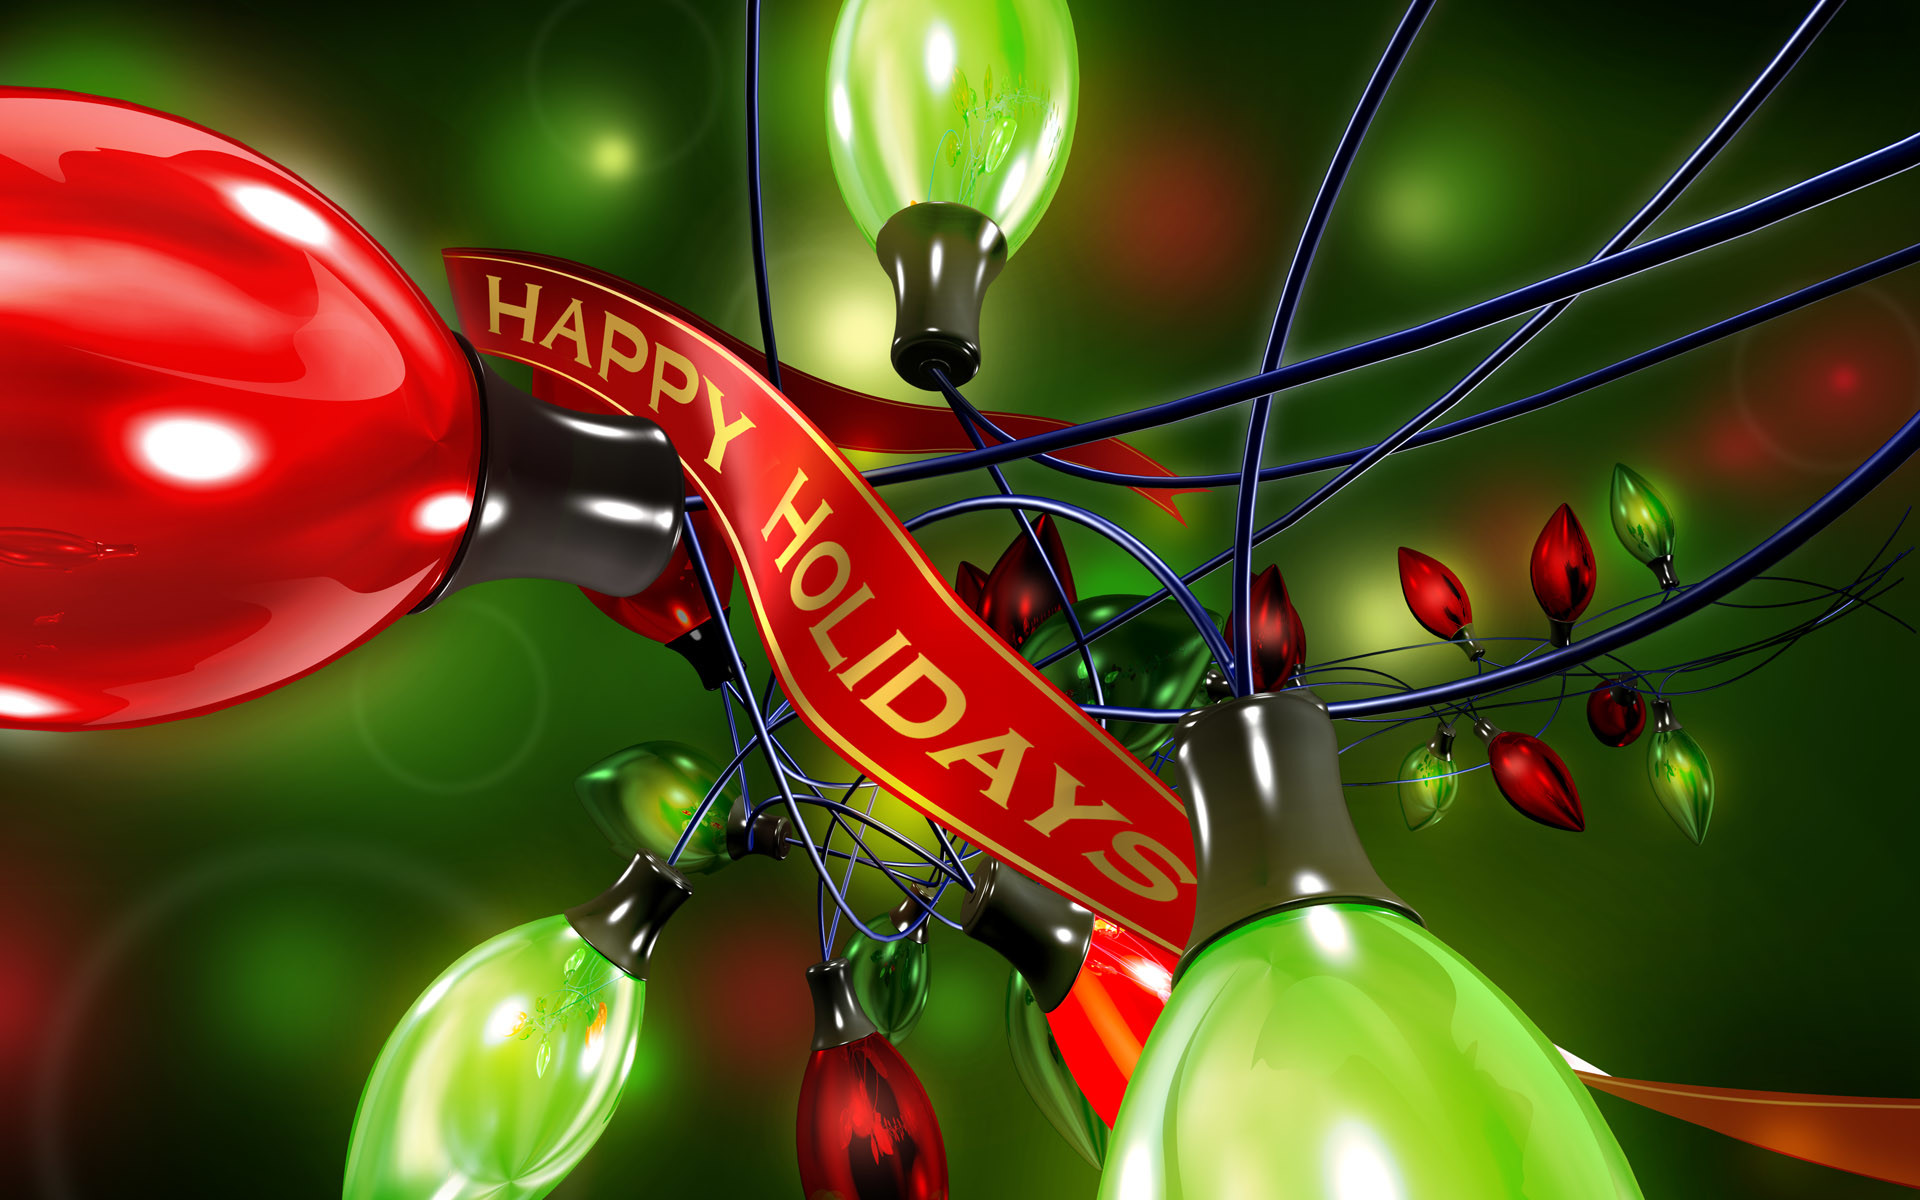 Happy holiday wallpapers HD wide.